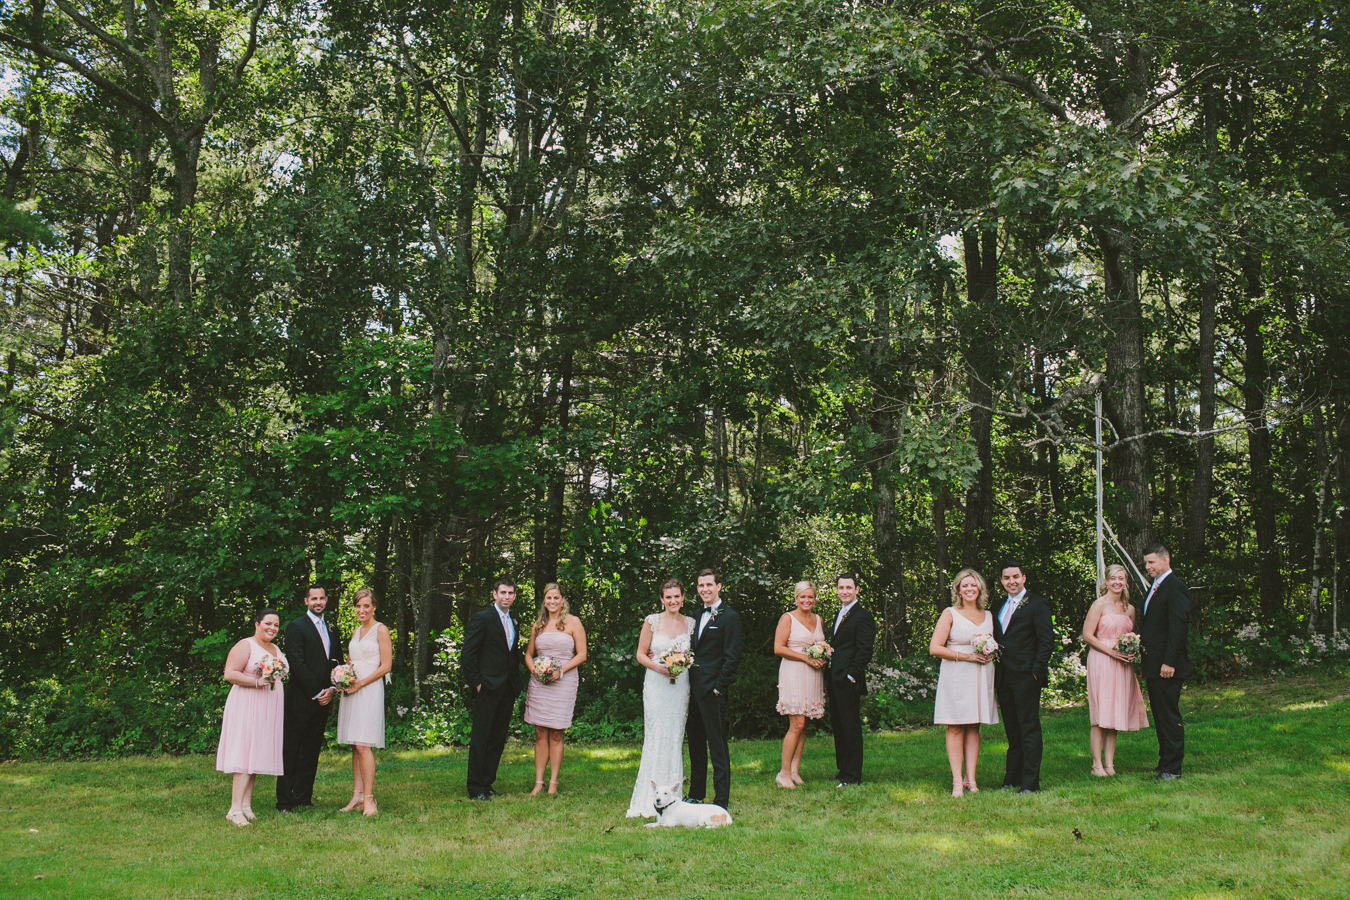 Ideas for including people in your wedding. Wisdom from an experienced professional wedding officiant. | Photo by  Henry + Mac Photography